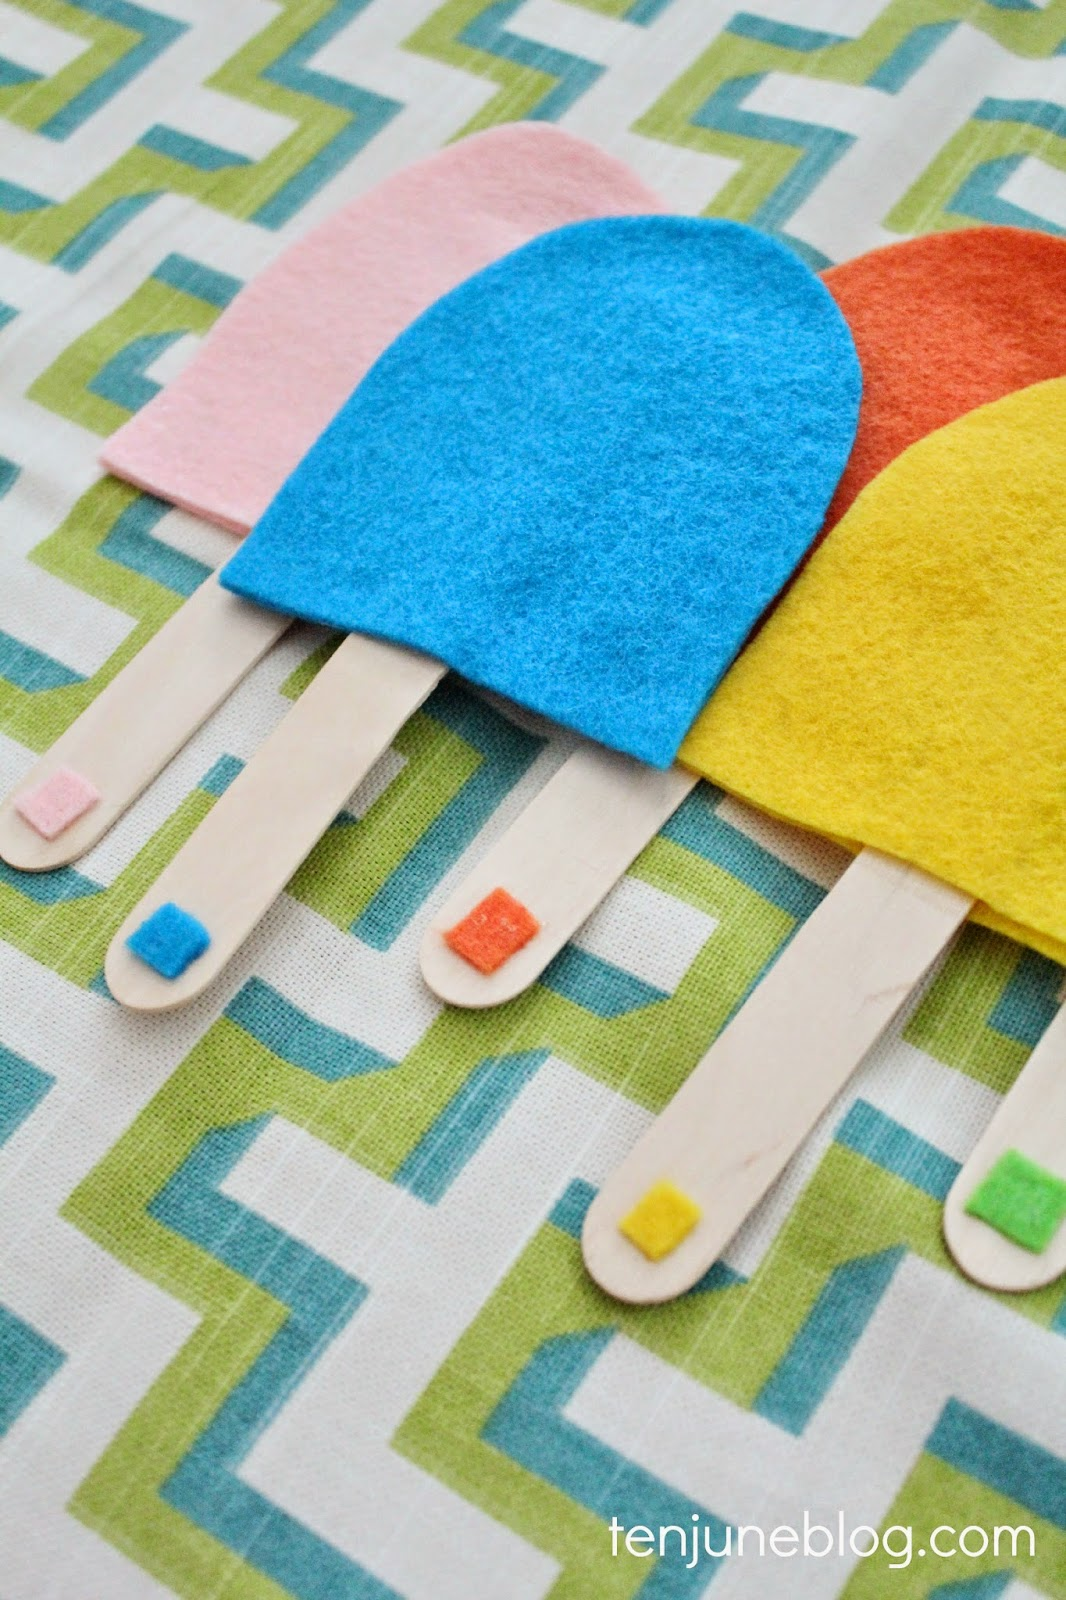 Ten June: DIY Toddler Busy Bag Popsicle Color Matching Game